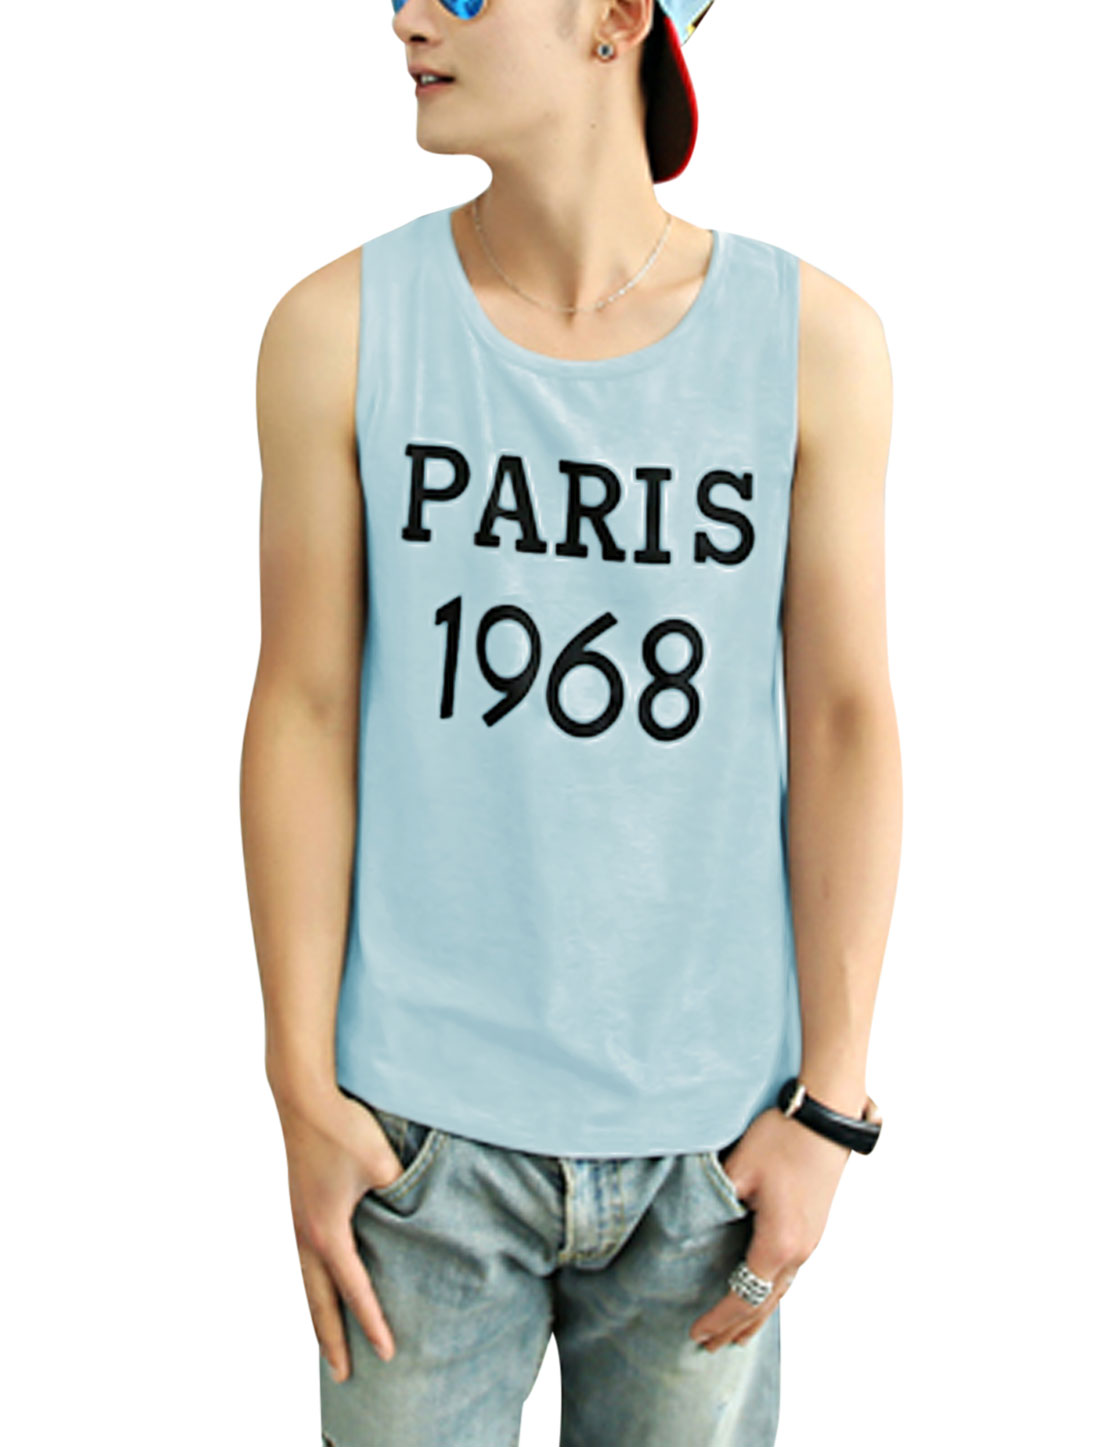 Man's Sleeveless Letters Print Round Neck Top Light Blue M